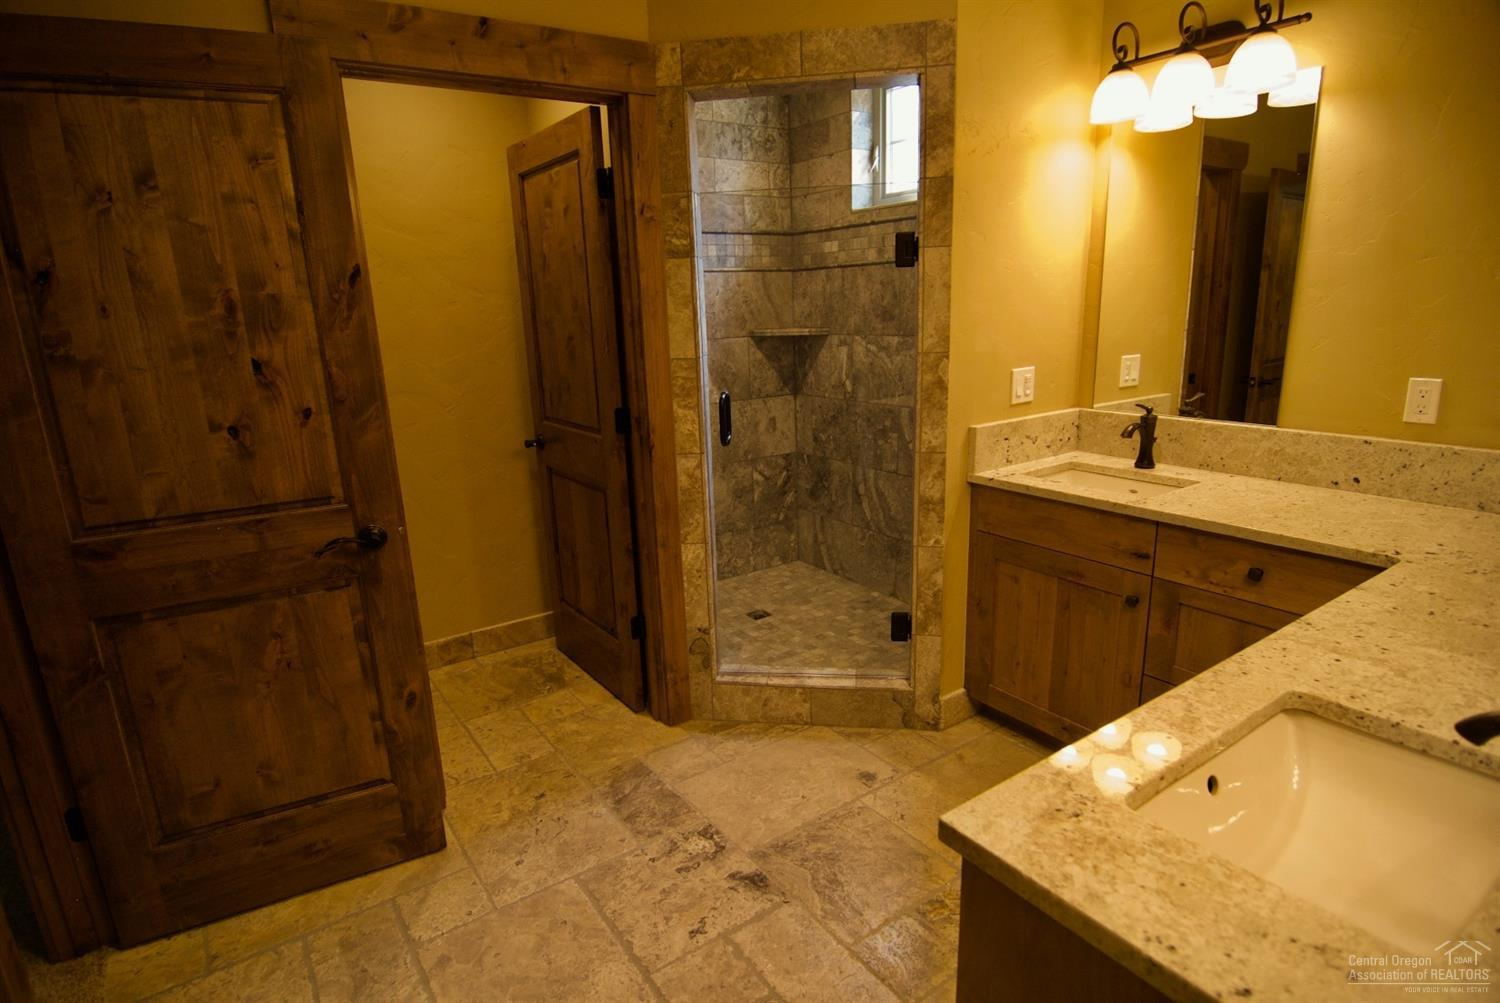 Picture of similar master bath that you could buil